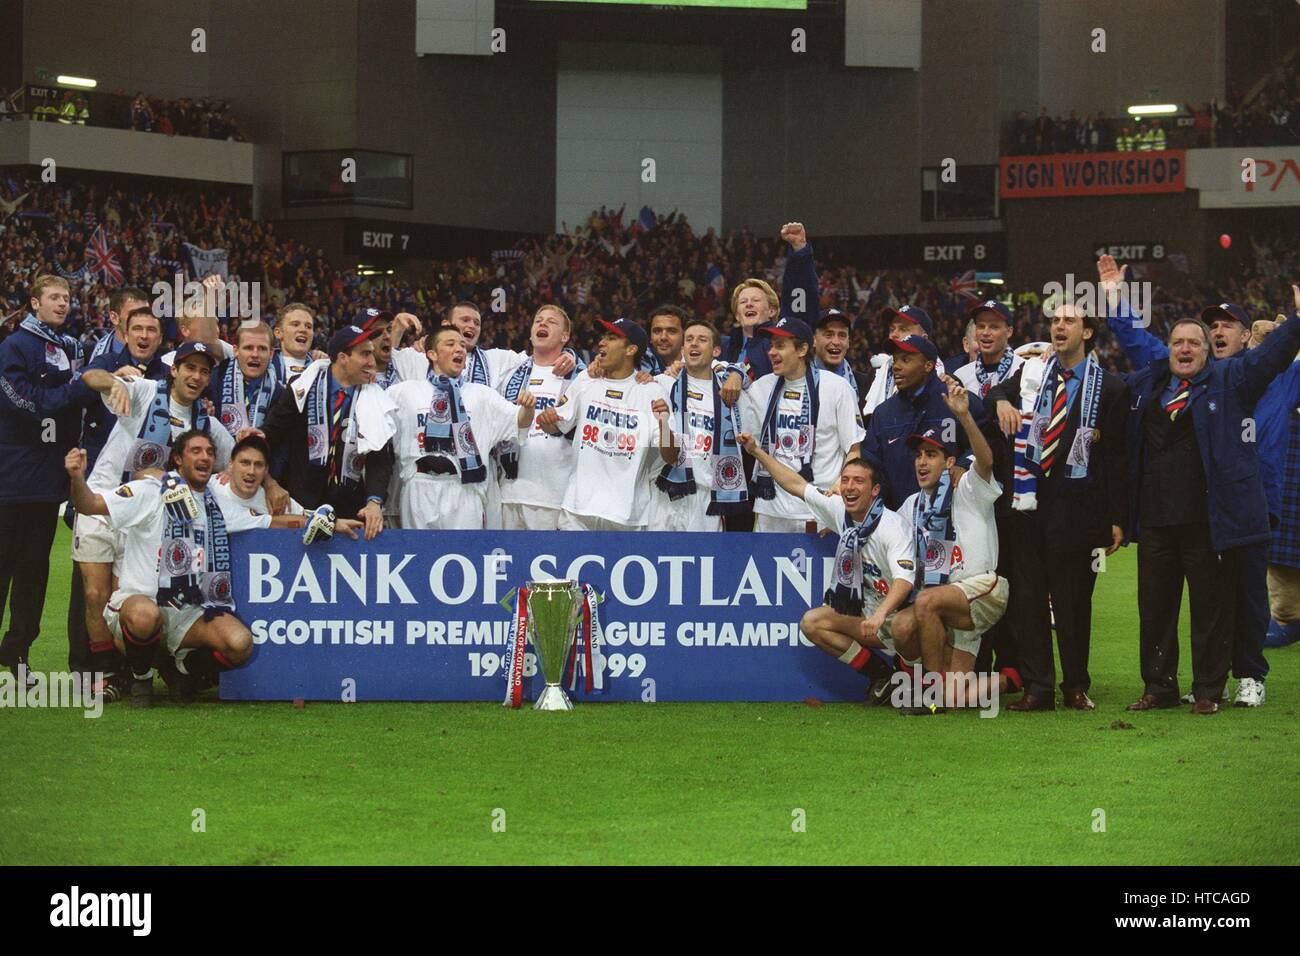 GLASGOW RANGERS LEAGUE CHAMPIONS 1998-99. 09 May 1999 - Stock Image